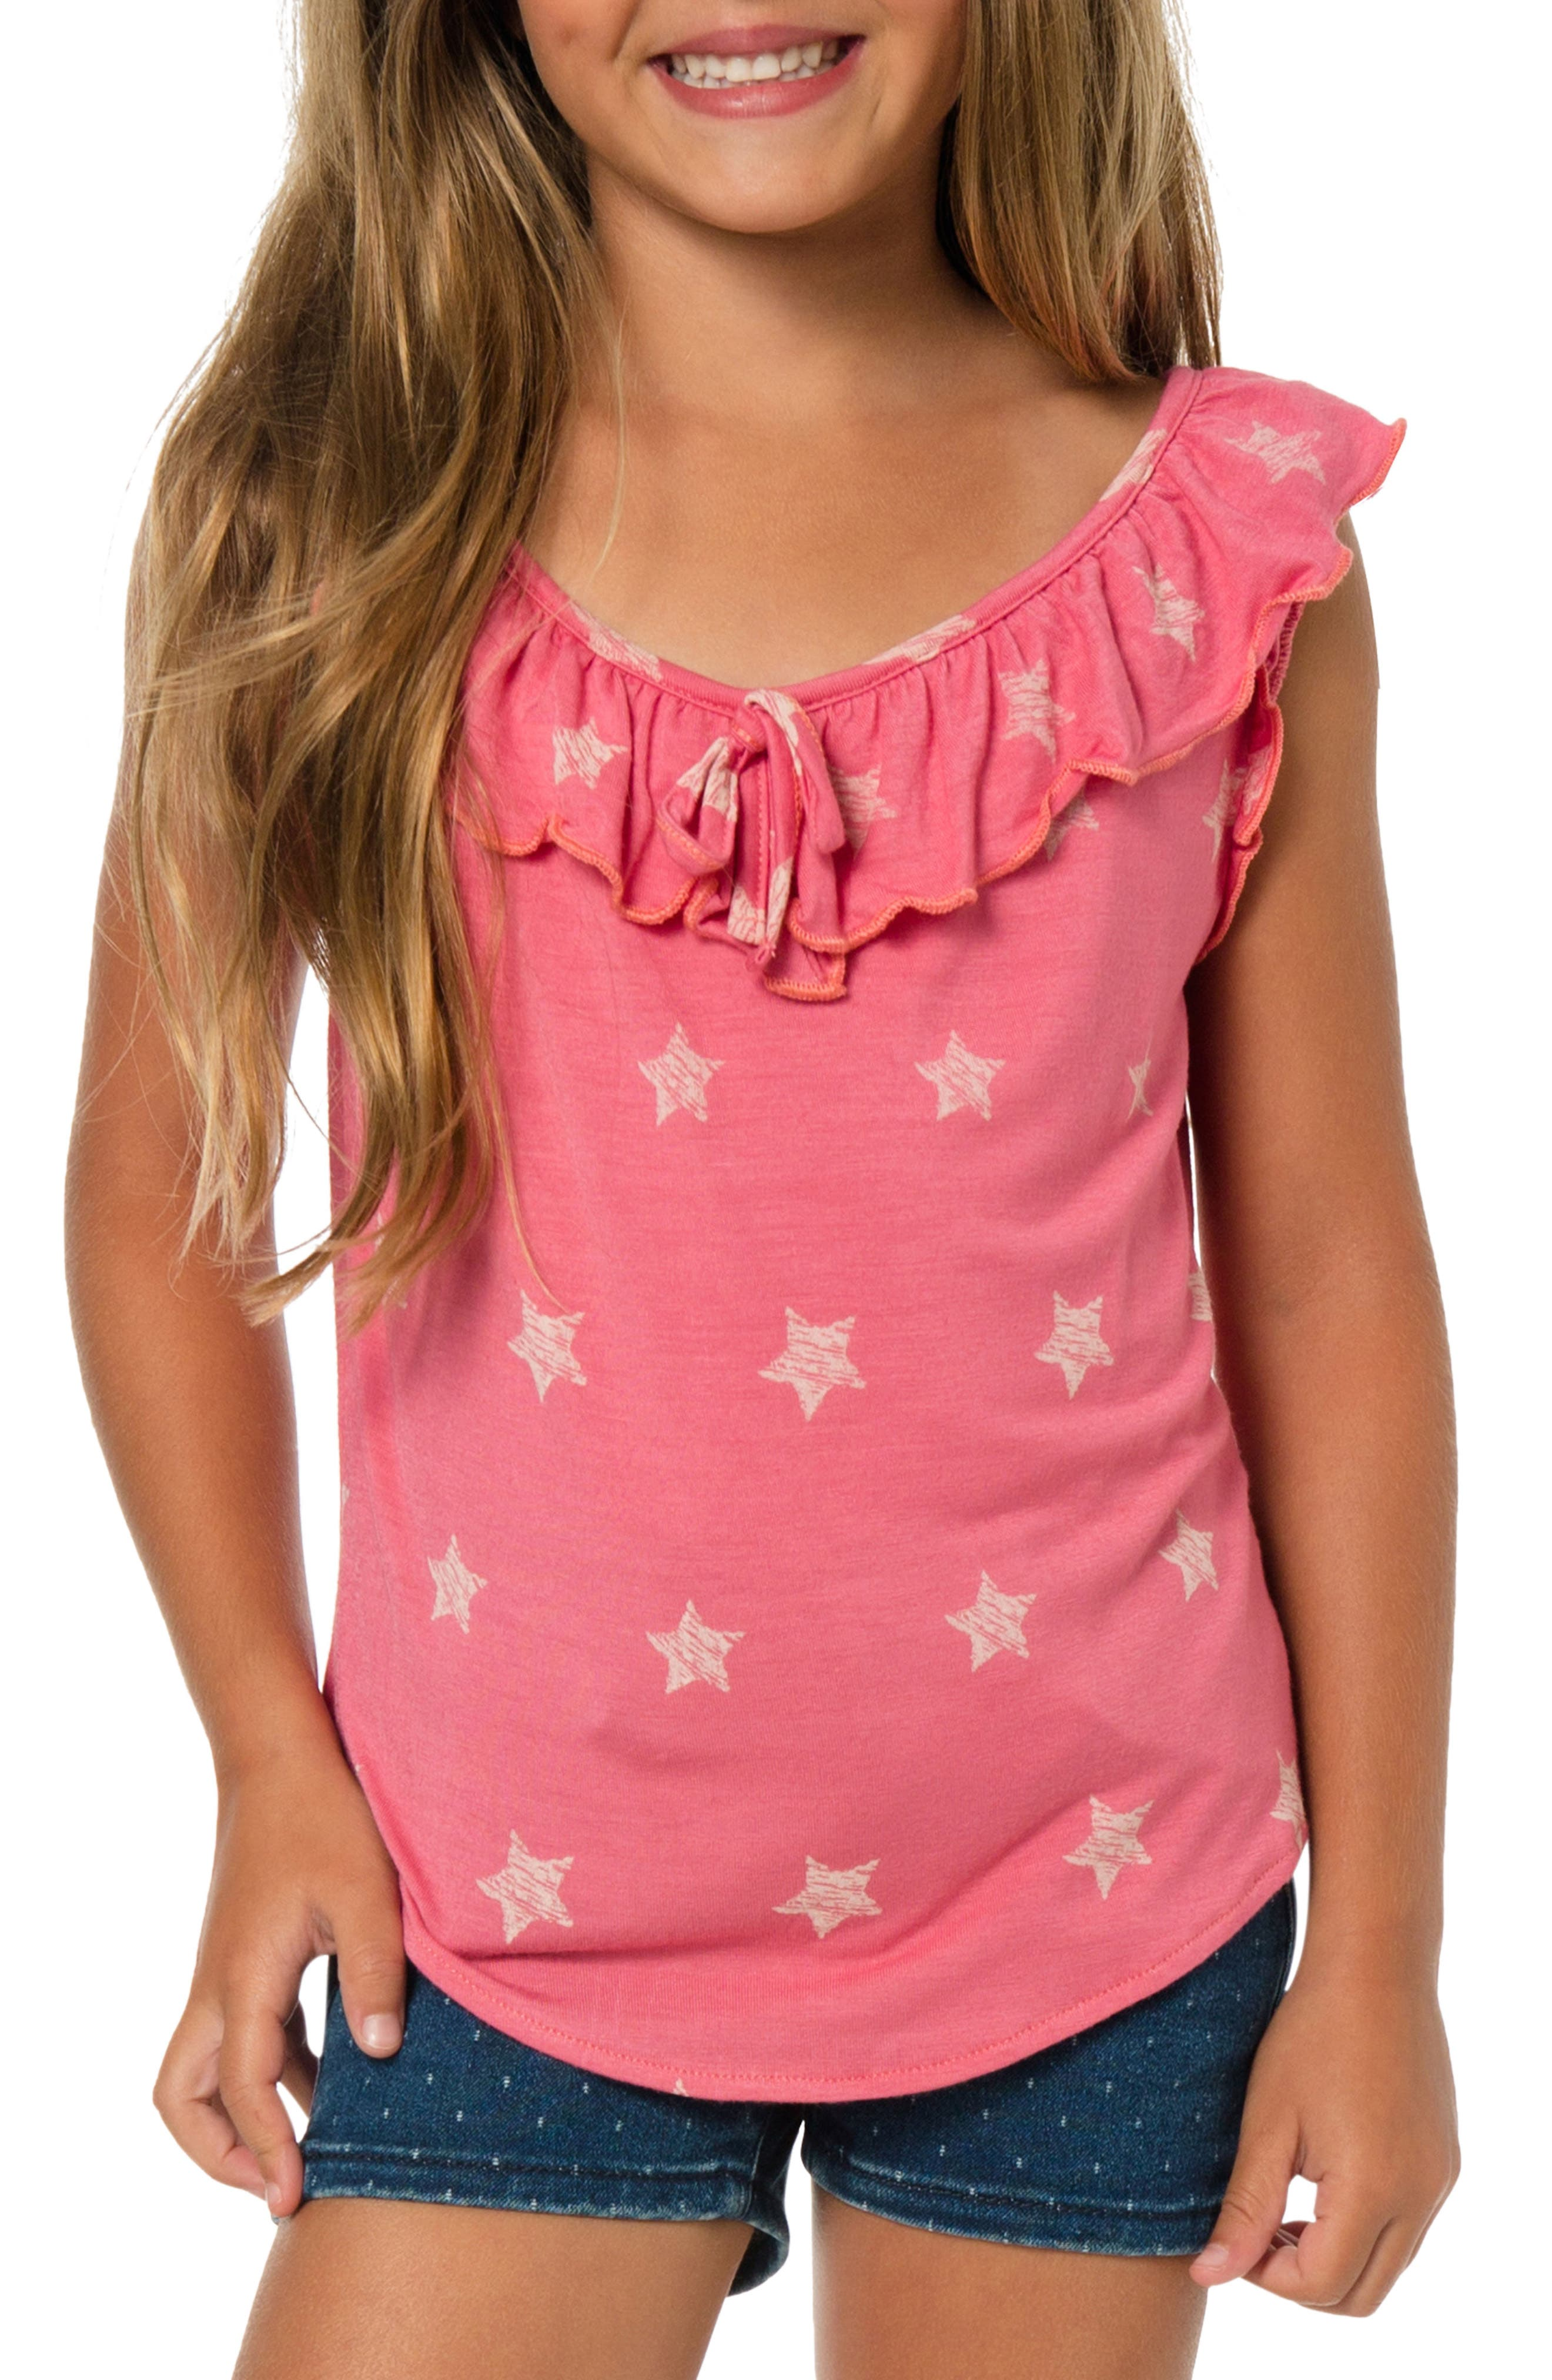 Alternate Image 1 Selected - O'Neill Starlight Tank (Toddler Girls & Little Girls)